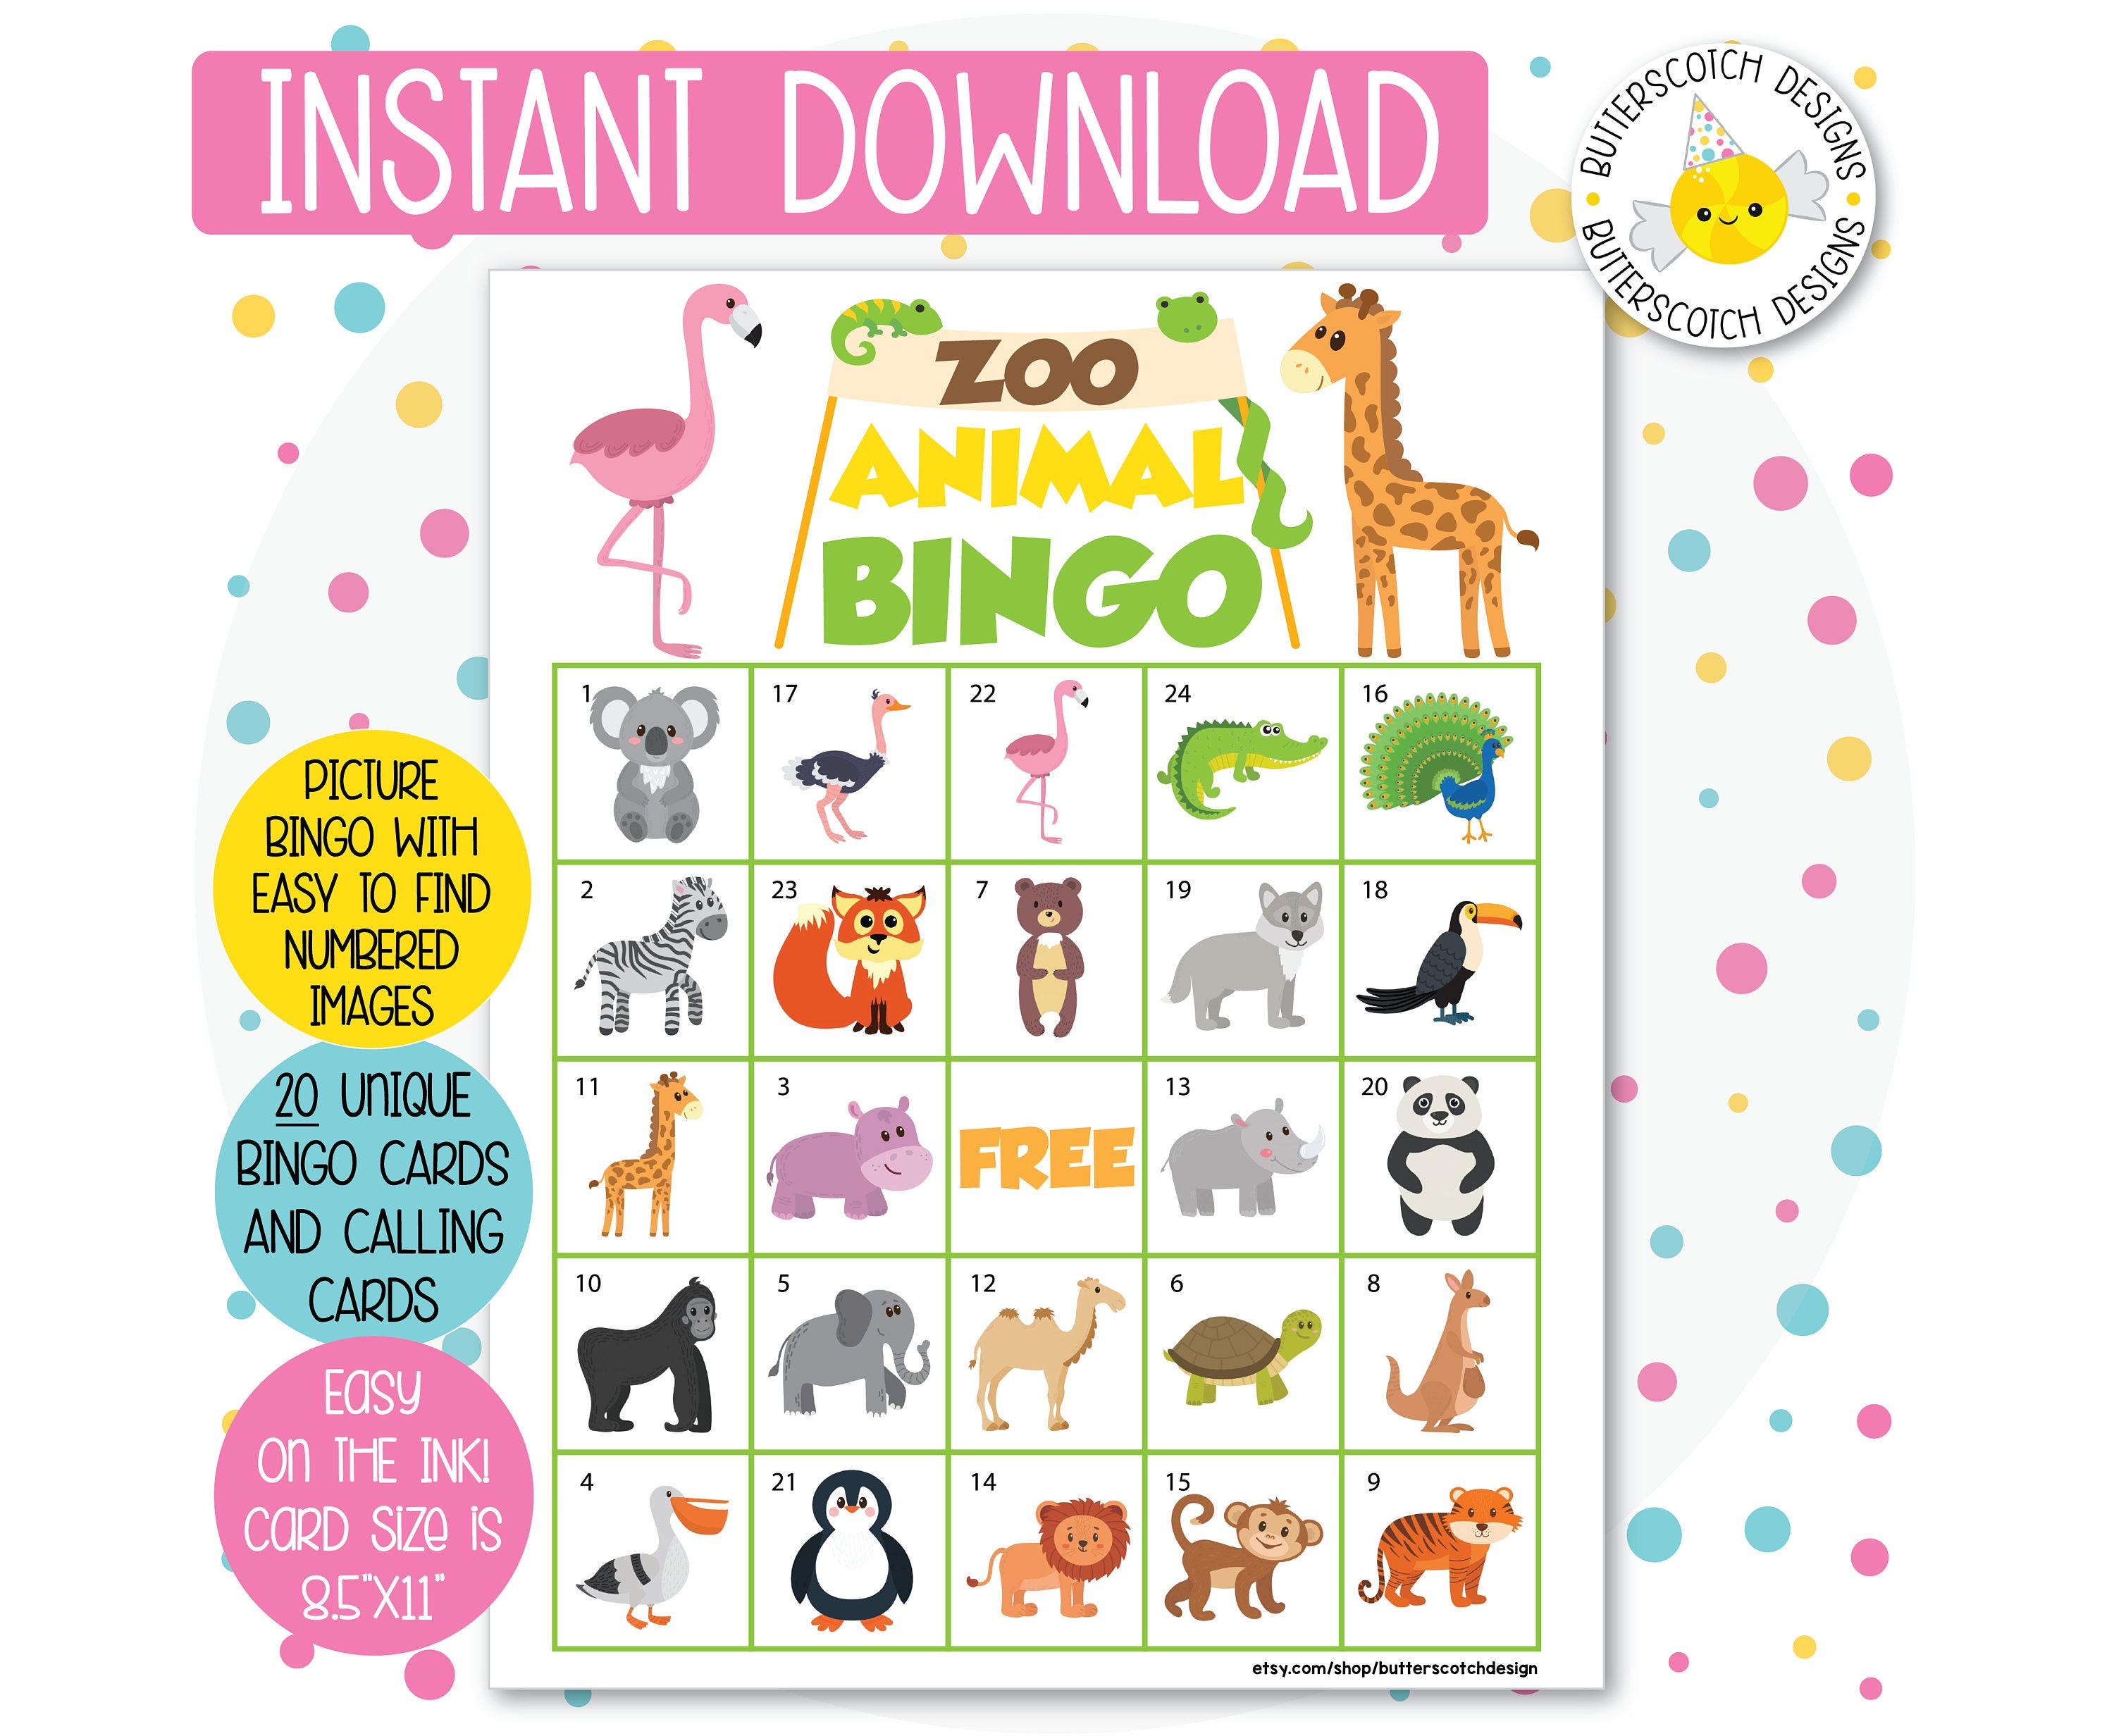 It is a picture of Geeky Animal Bingo Printable